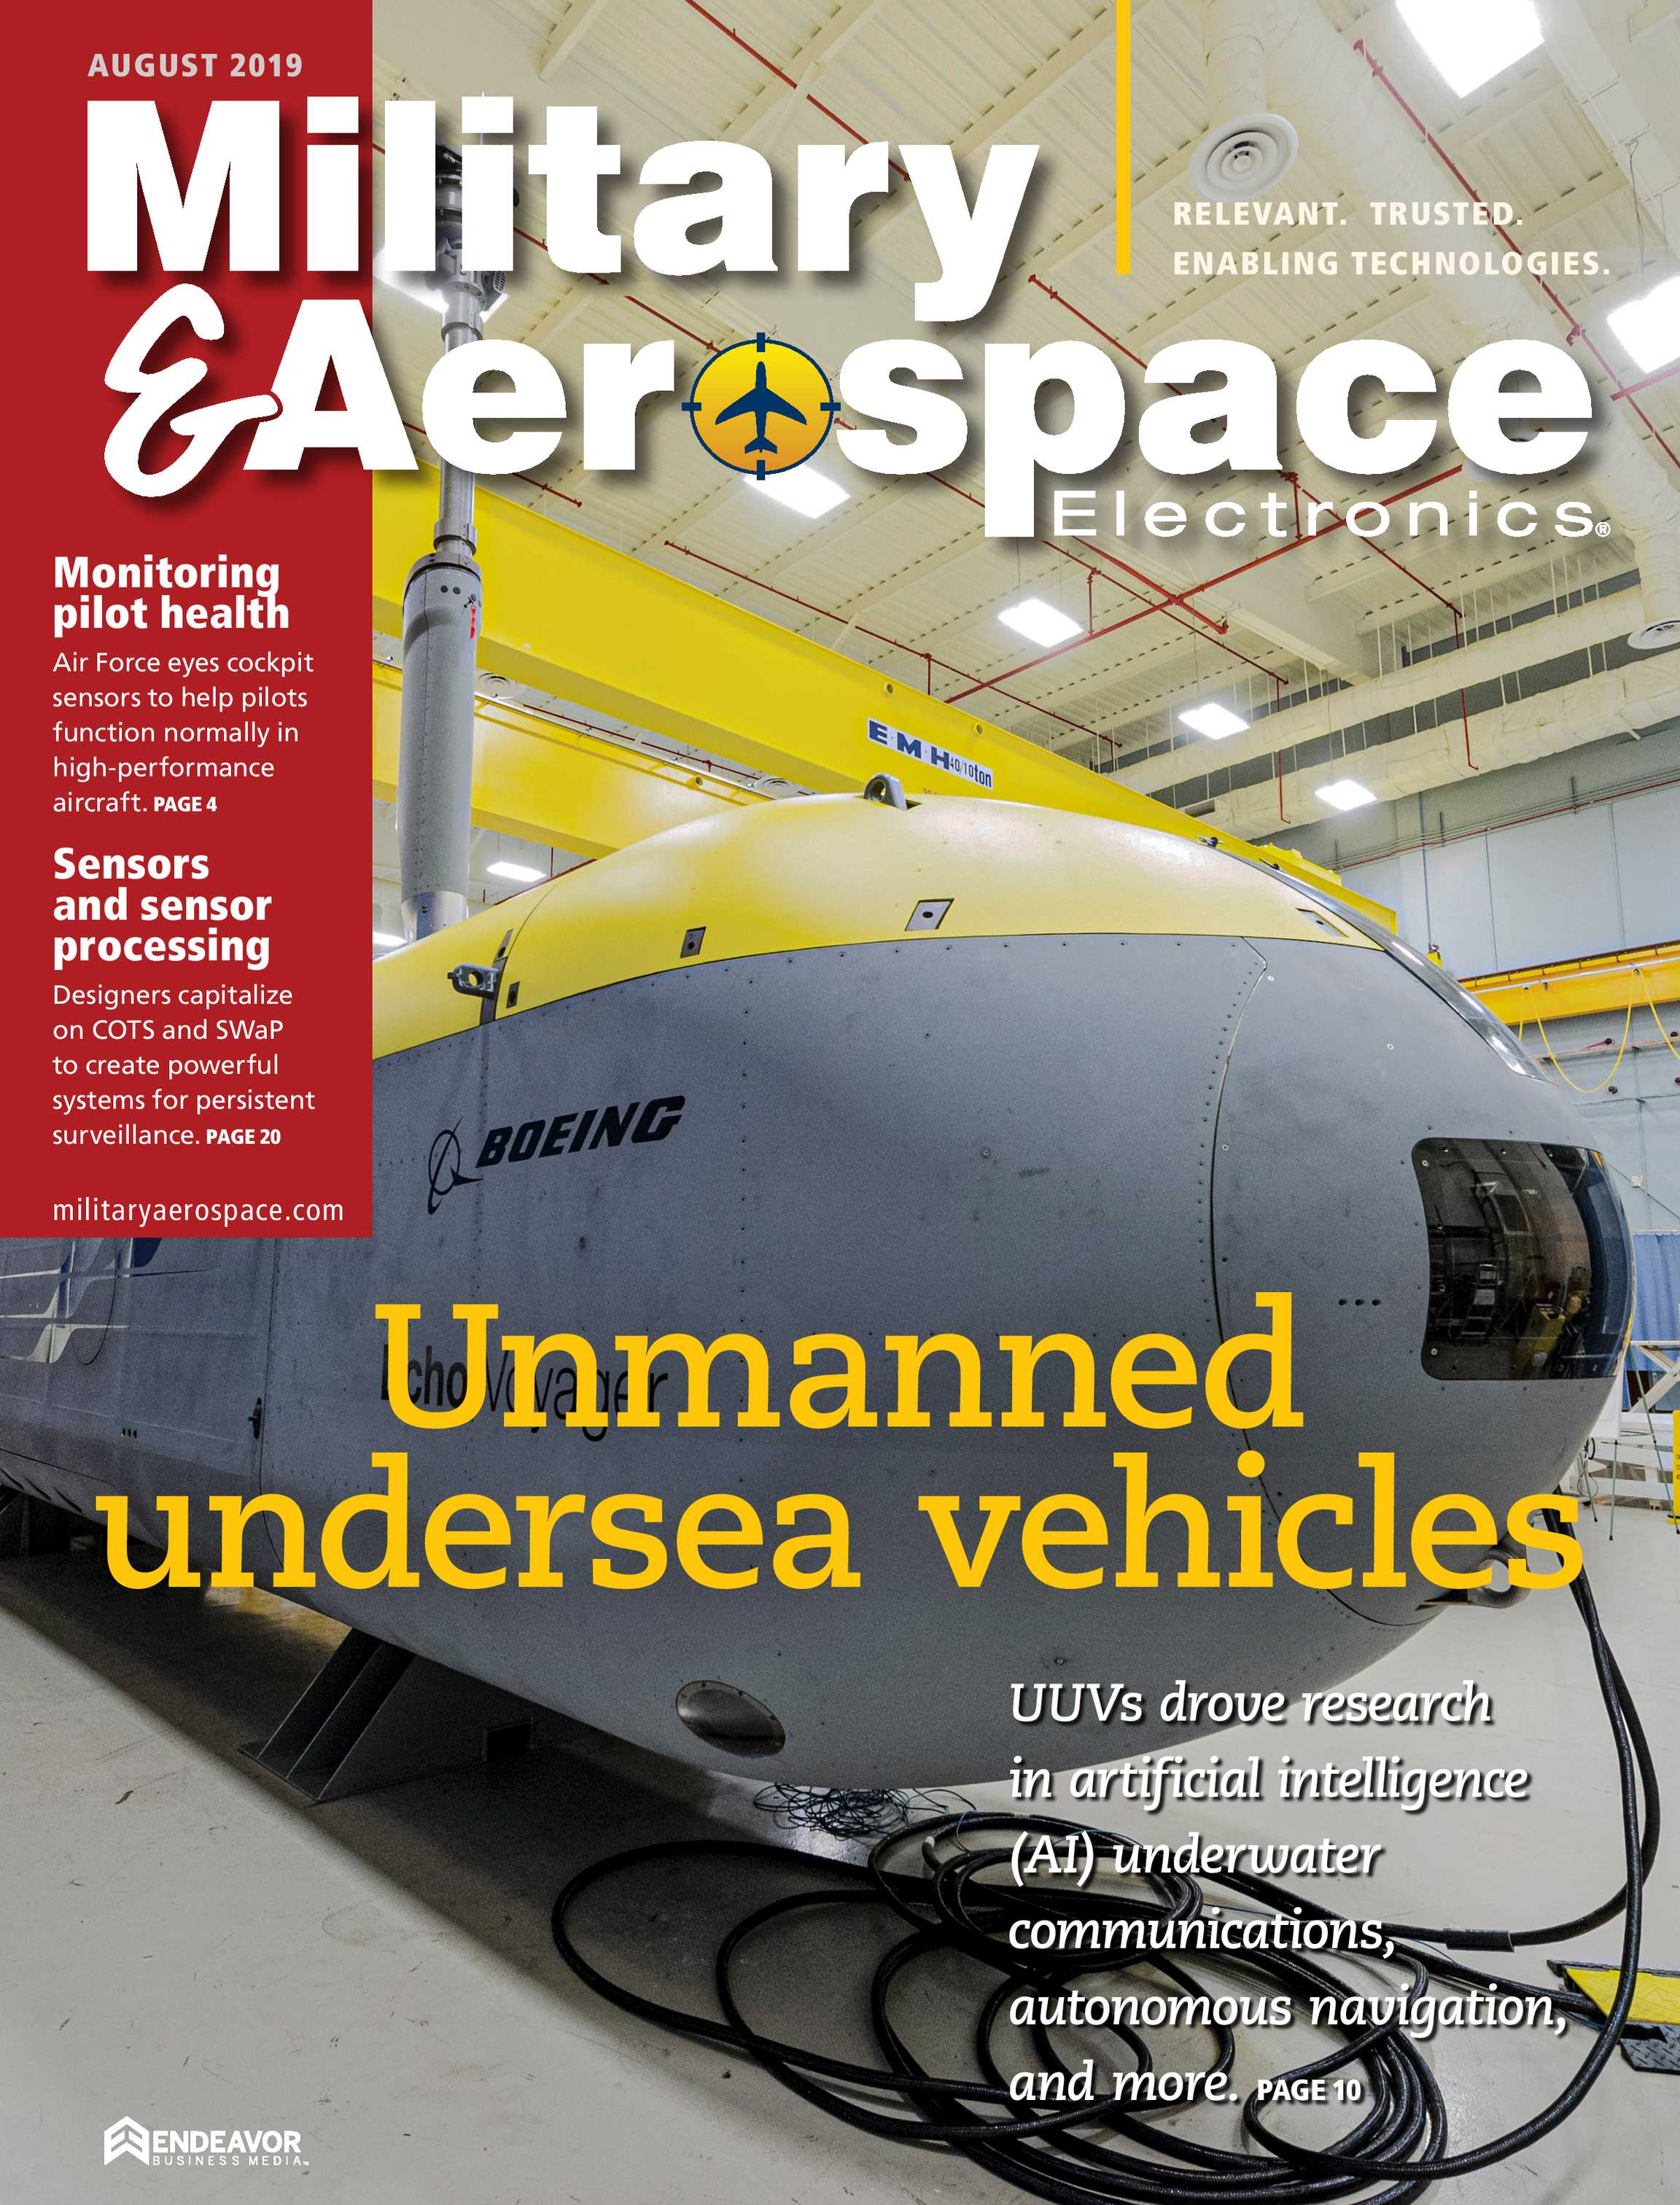 Military & Aerospace Electronics - August 2019 - page Cover